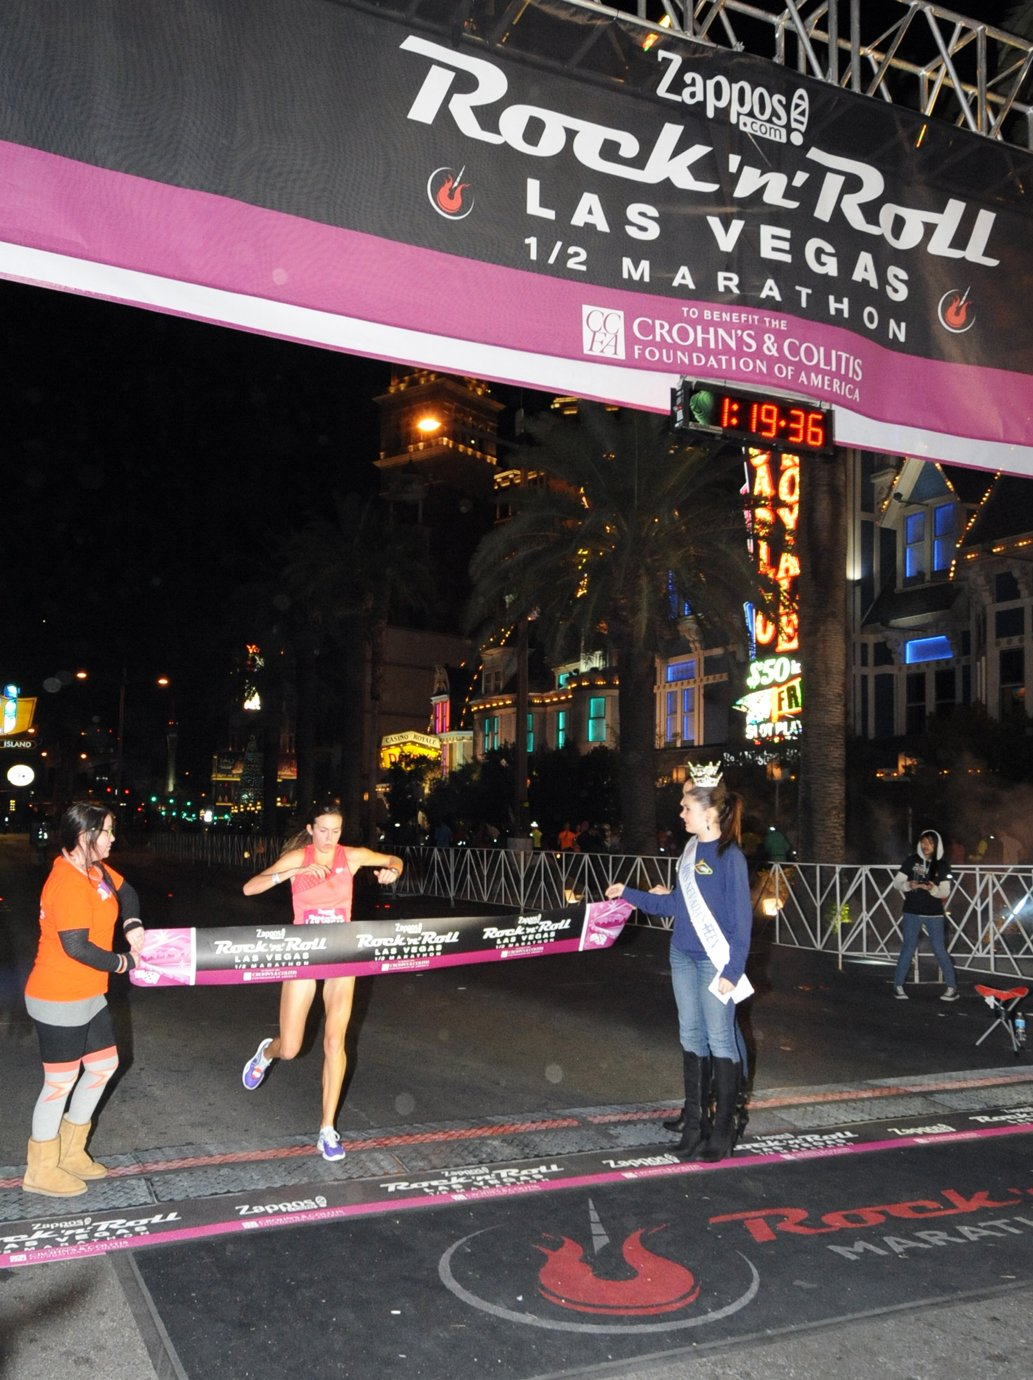 Bradi Hutchison of Pocatello, Idaho was the women's champion in the half-marathon with a time of 1:19:34 (Courtesy: LVCVA)